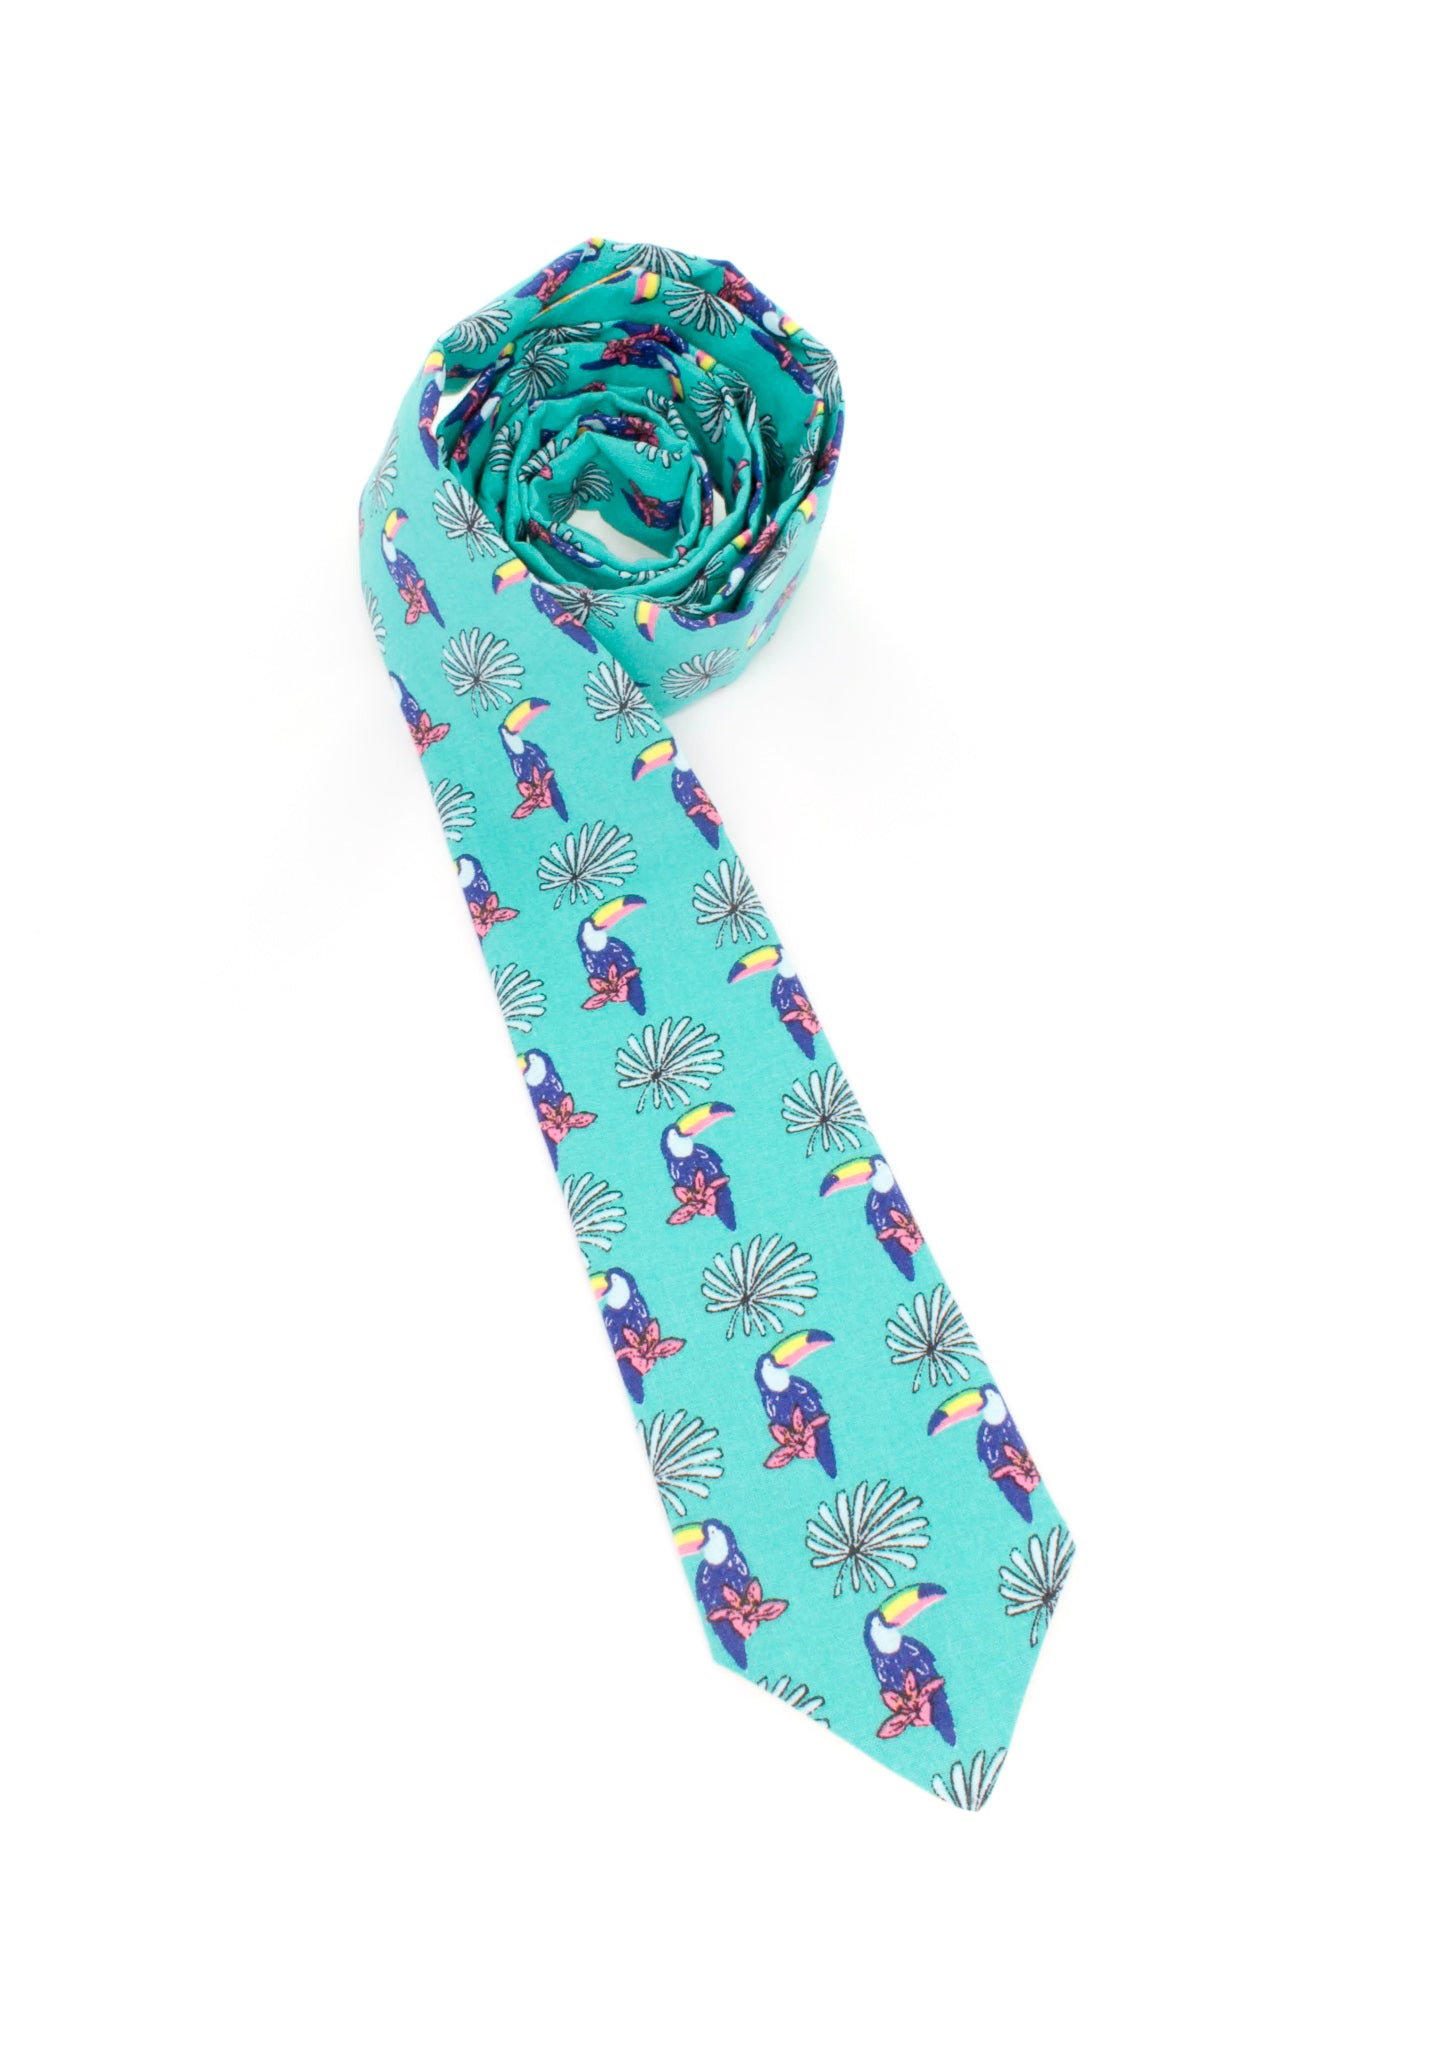 tie toucan bird theme fun turquoise necktie tropical animal www.GroovyTieSquad.com